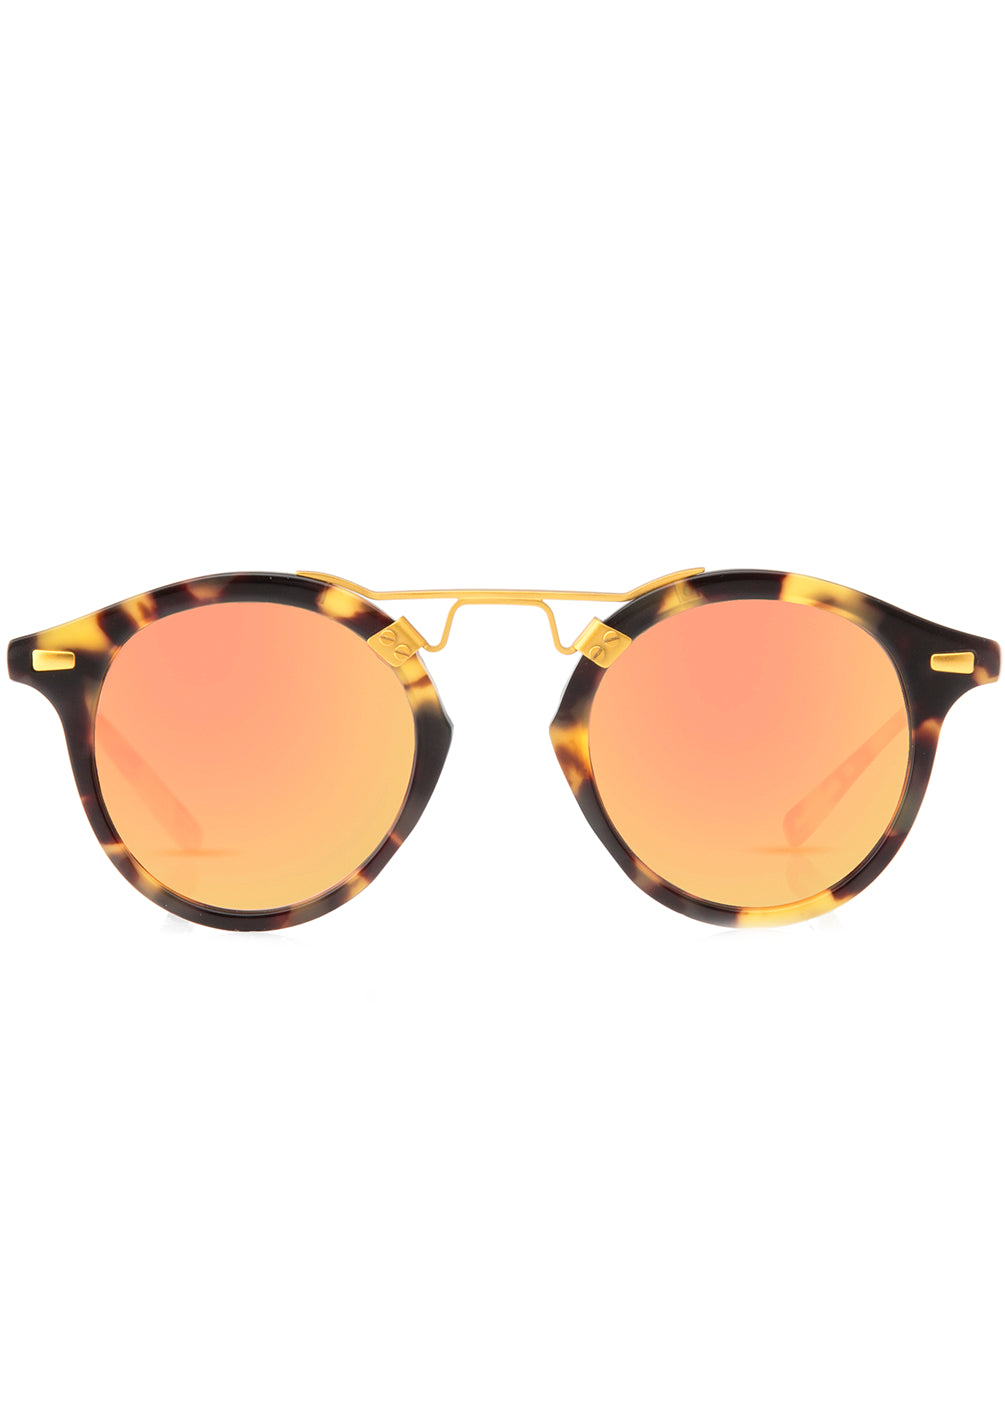 Krewe st. louis sunglasses audubon rose